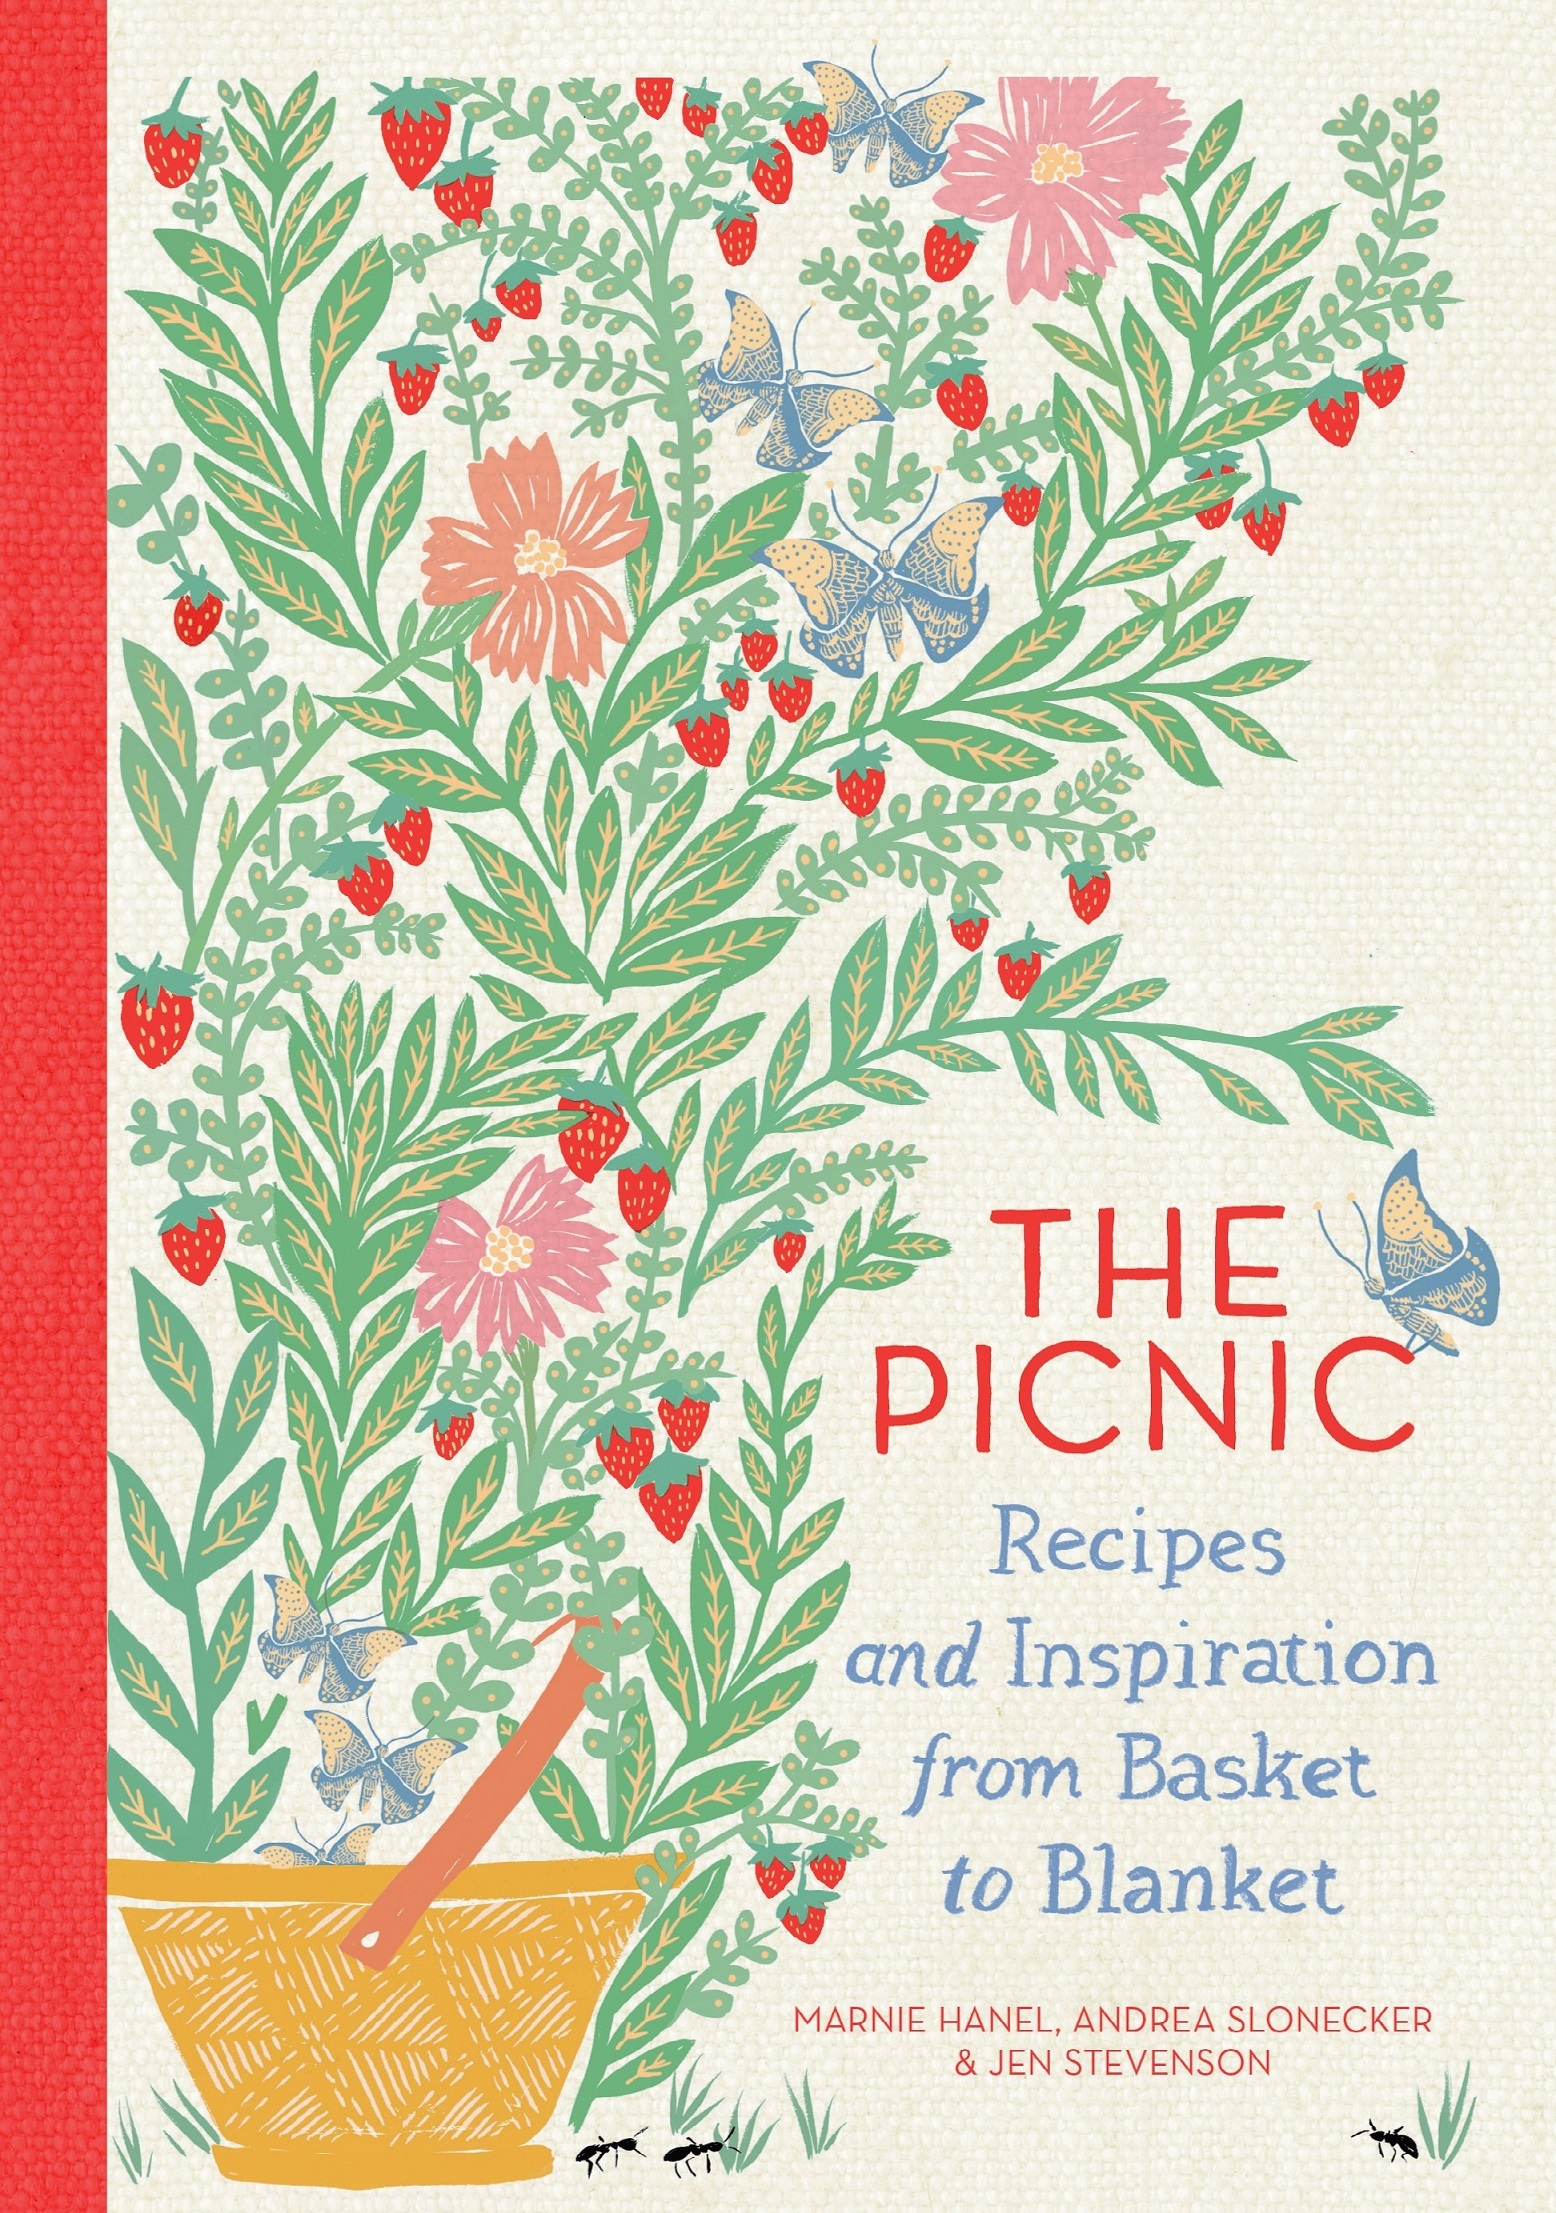 The Picnic by Marnie Hanel